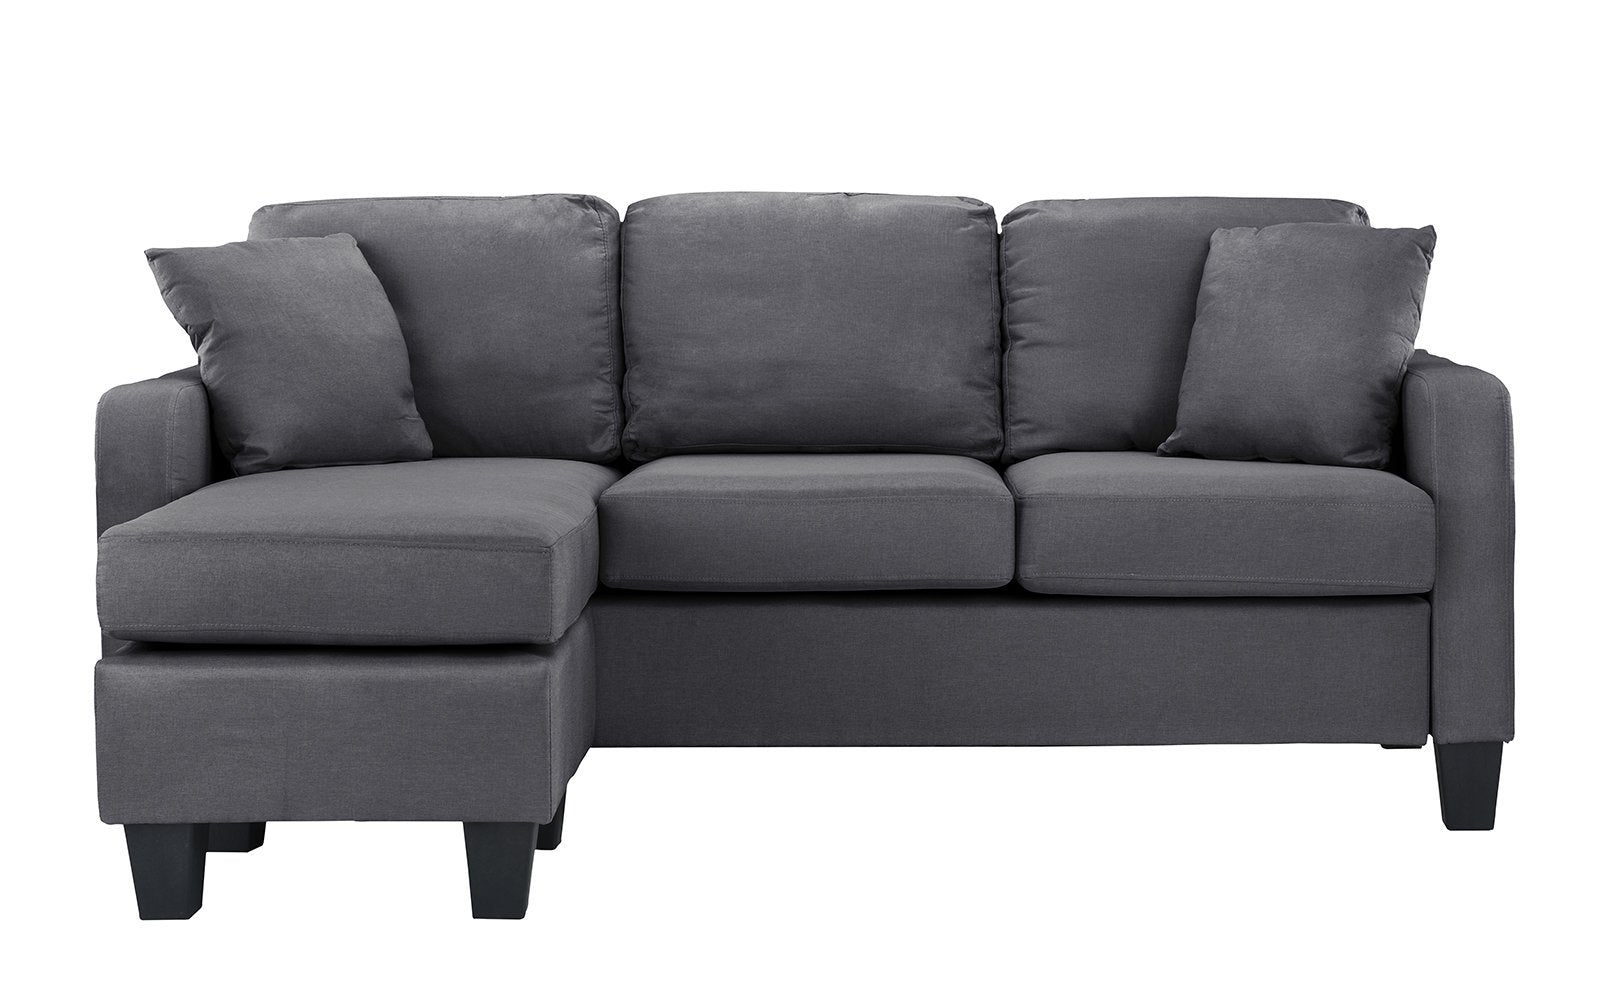 Small Linen Sectional Sofa Image